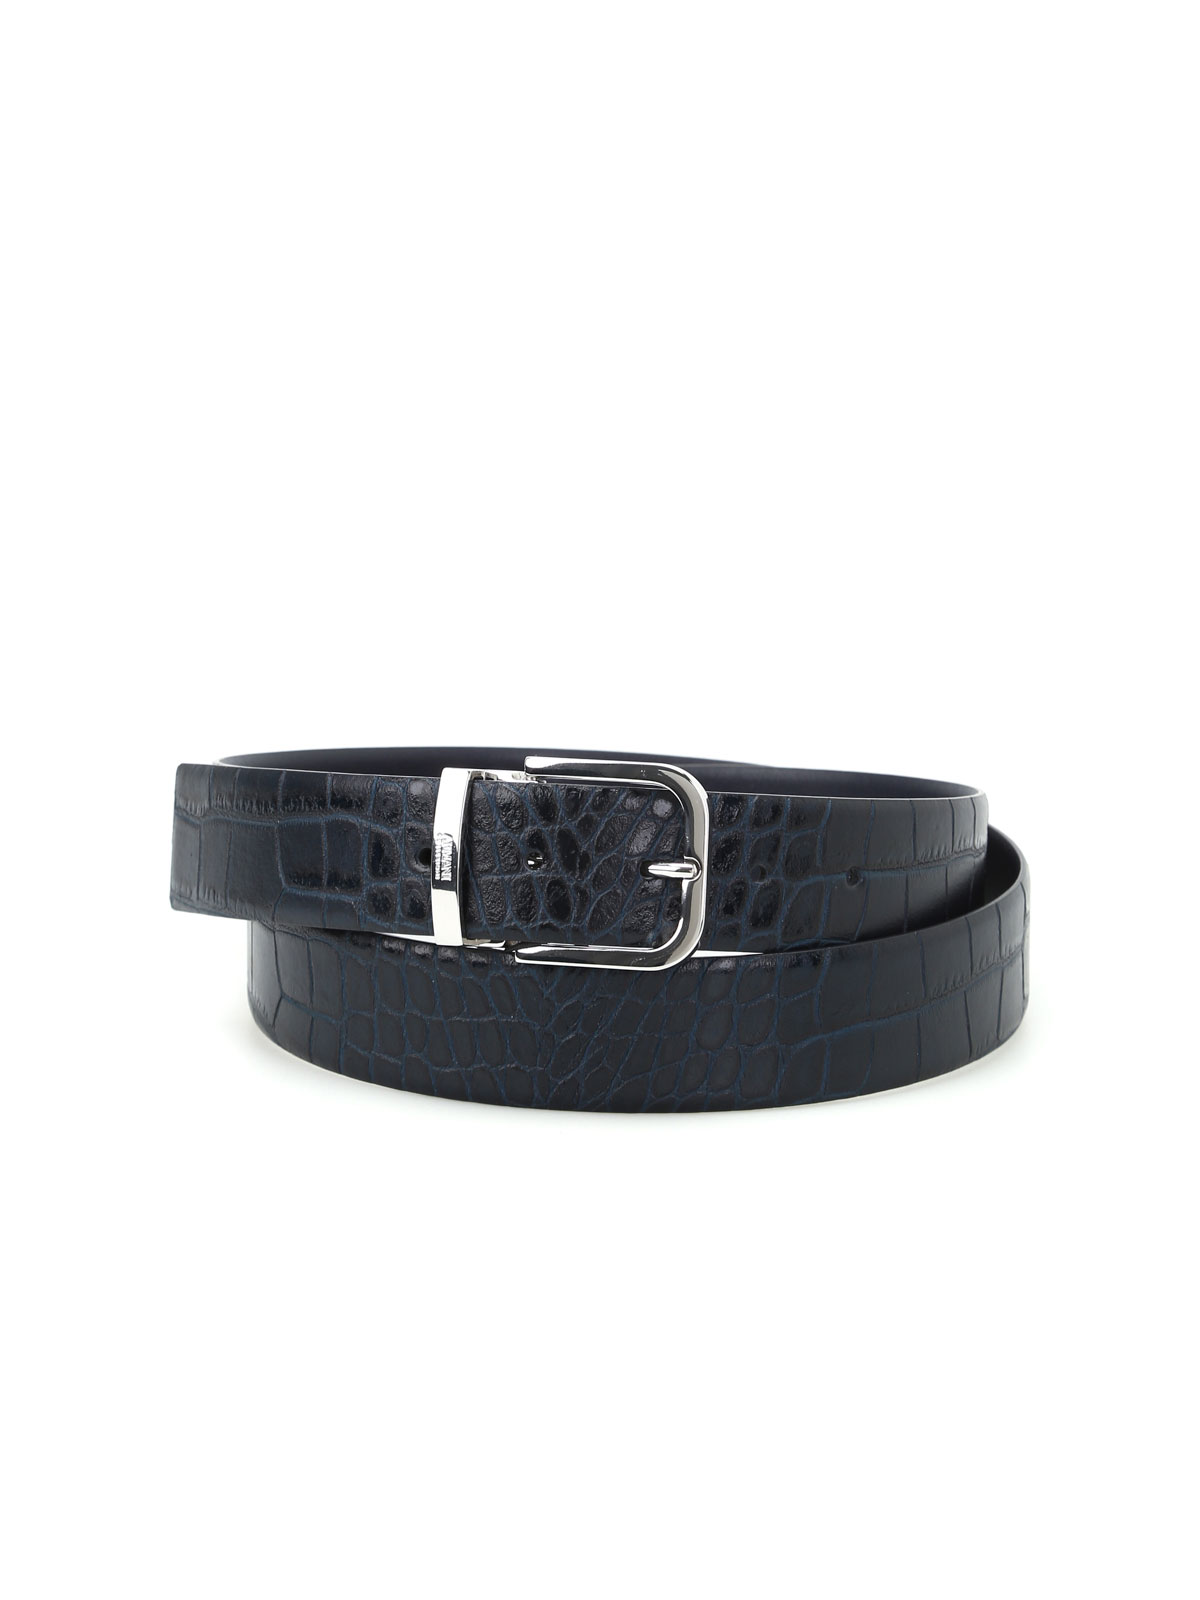 Picture of ARMANI | BELT Cintura reversibile stampa cocco